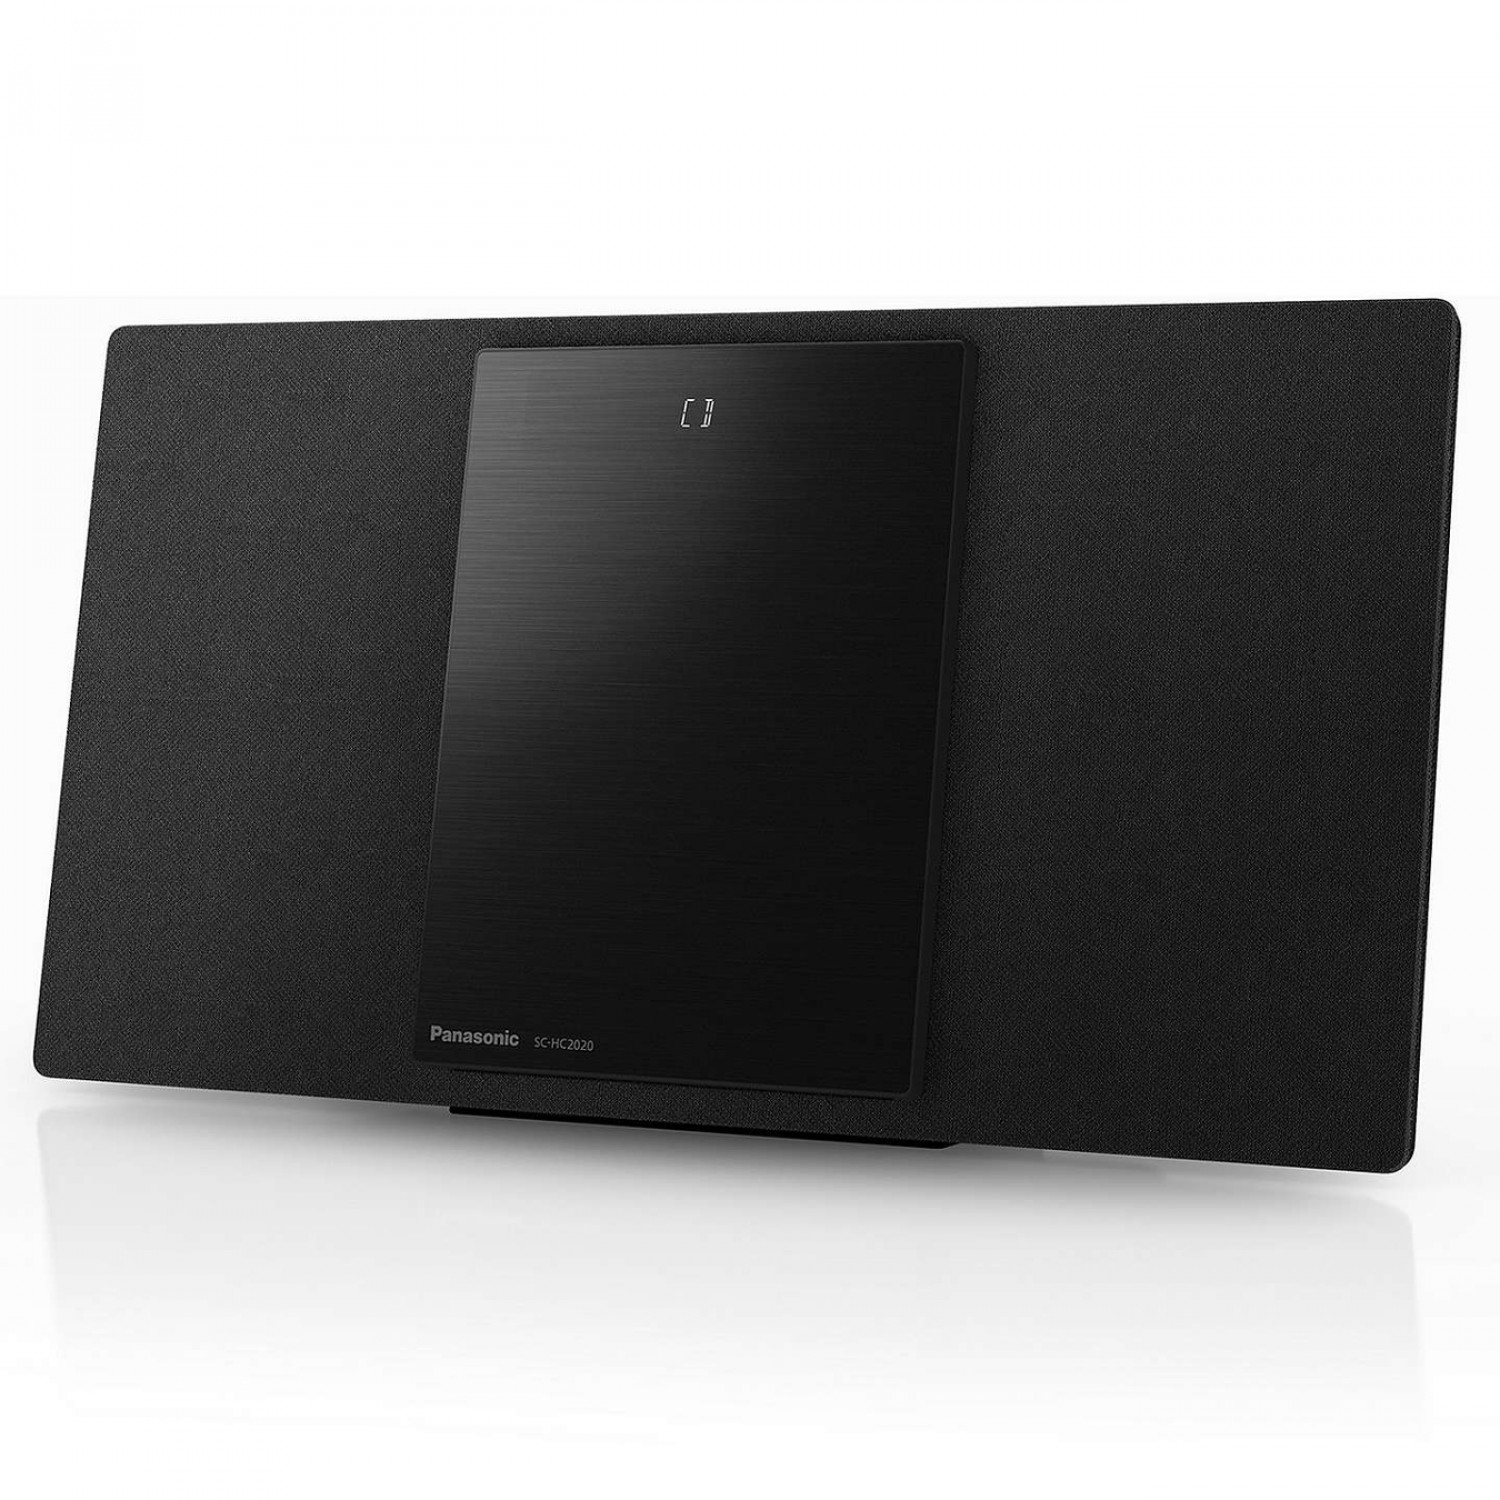 Tivoli Audio Dab Panasonic Sc-hc2020 Micro Hi-fi System With Built In